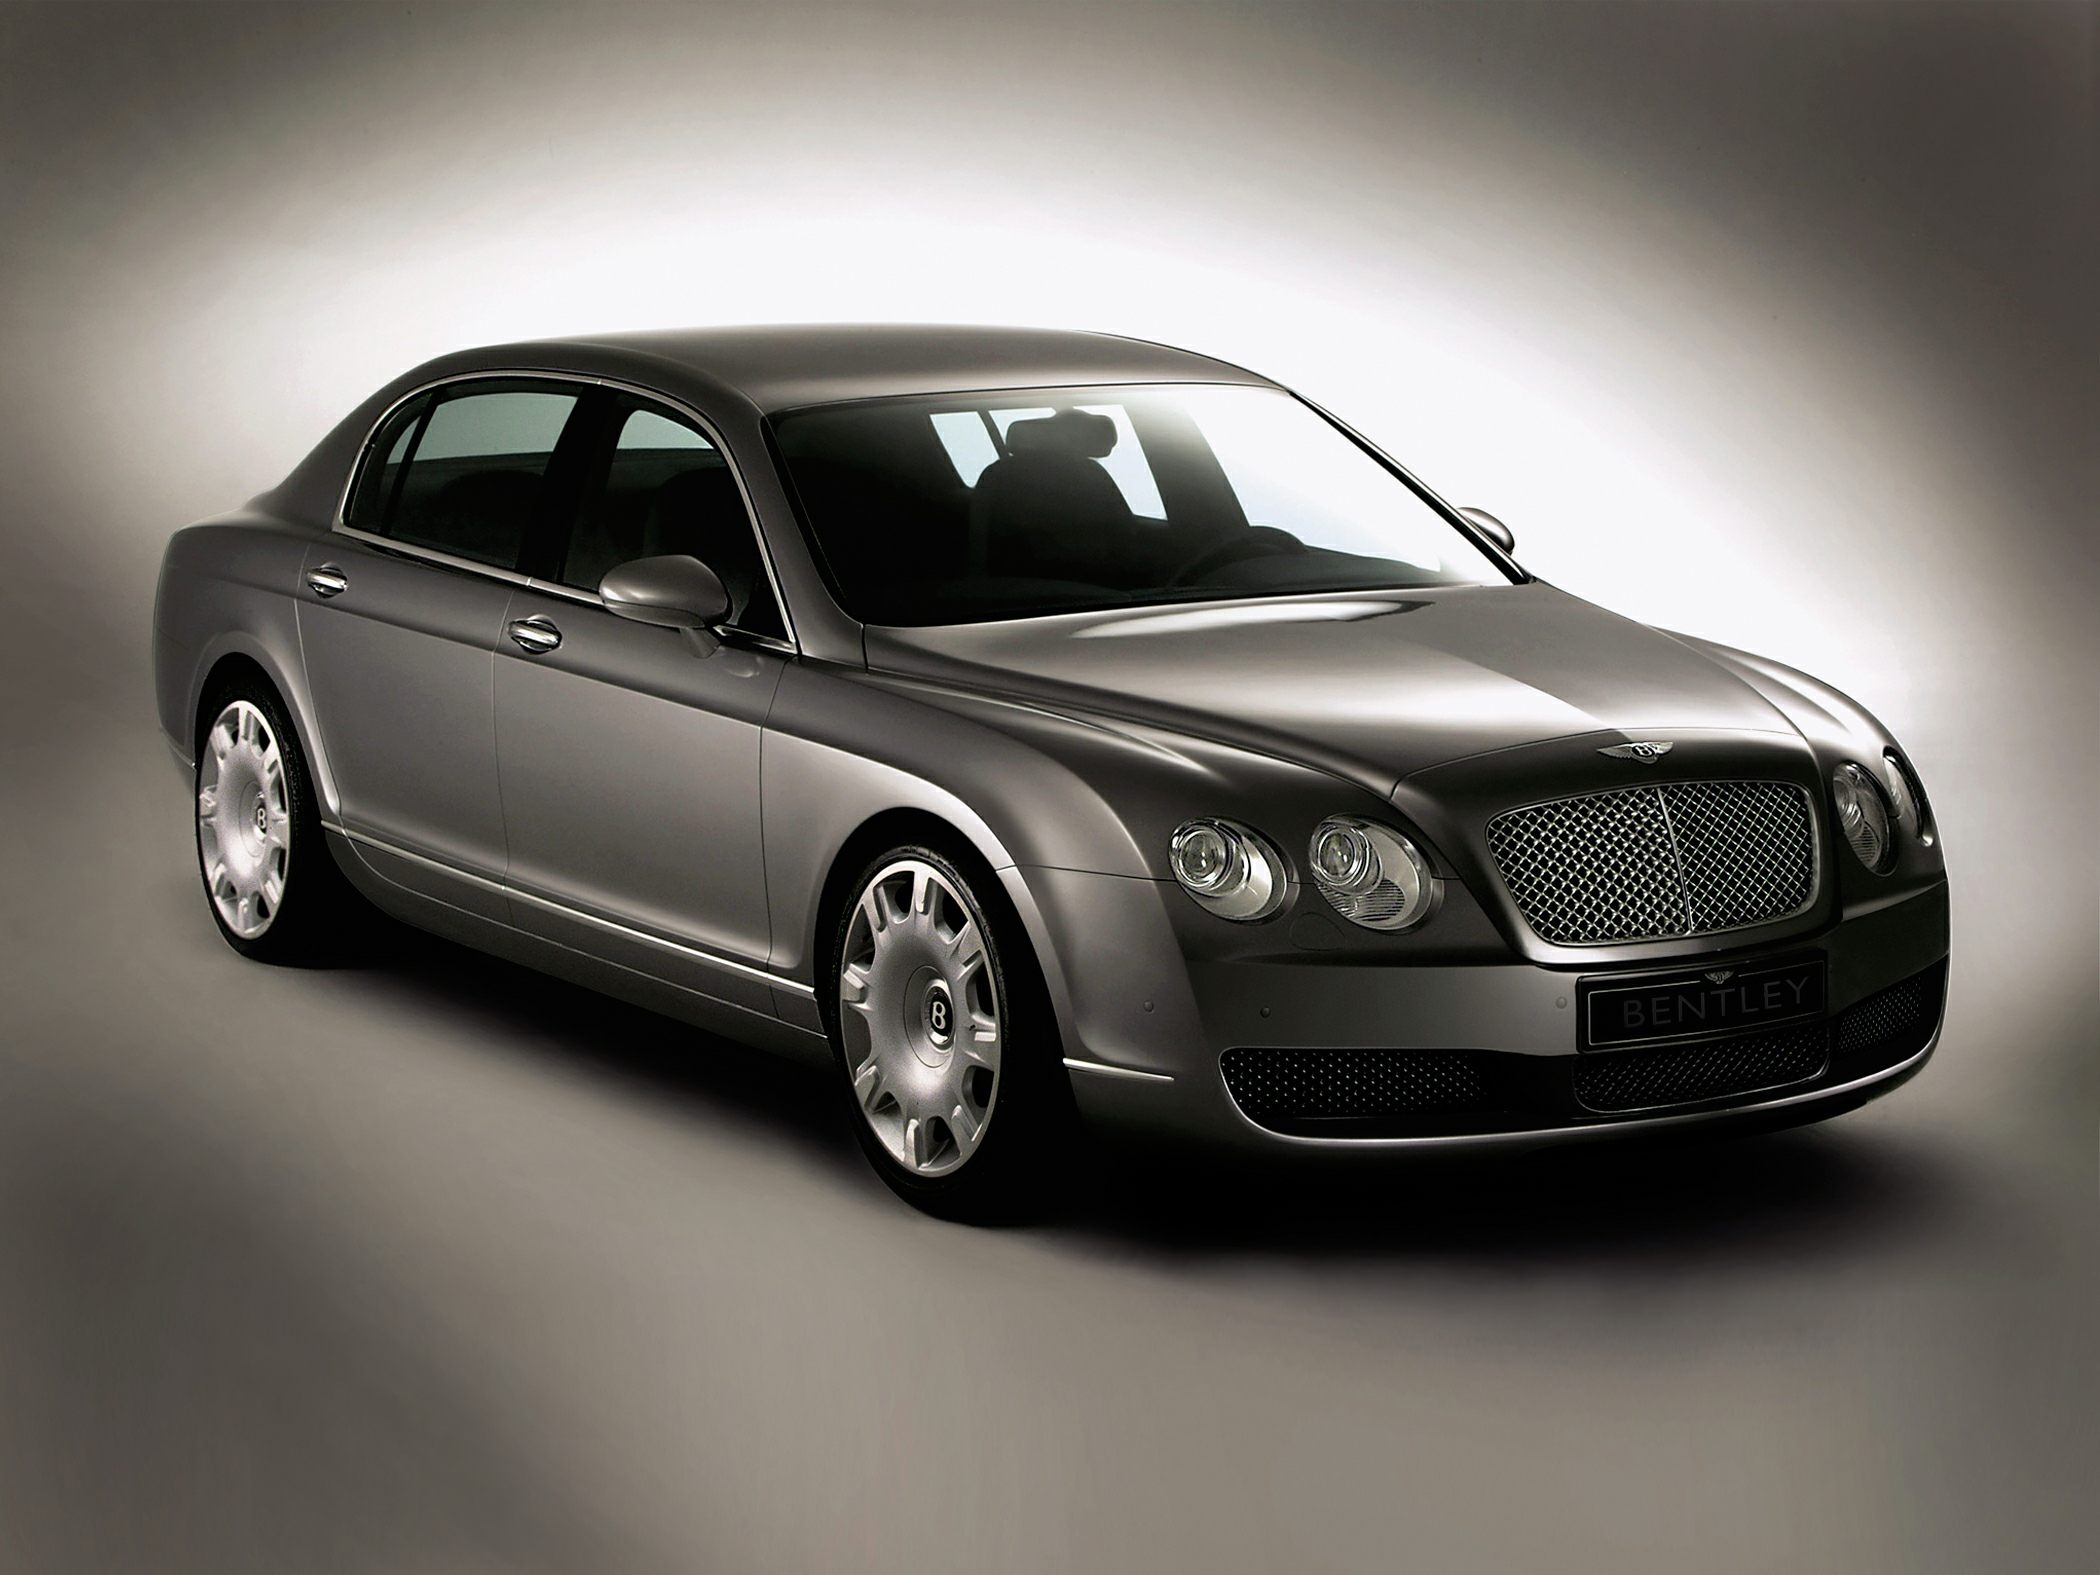 2008 Bentley Continental Flying Spur Specs and Prices